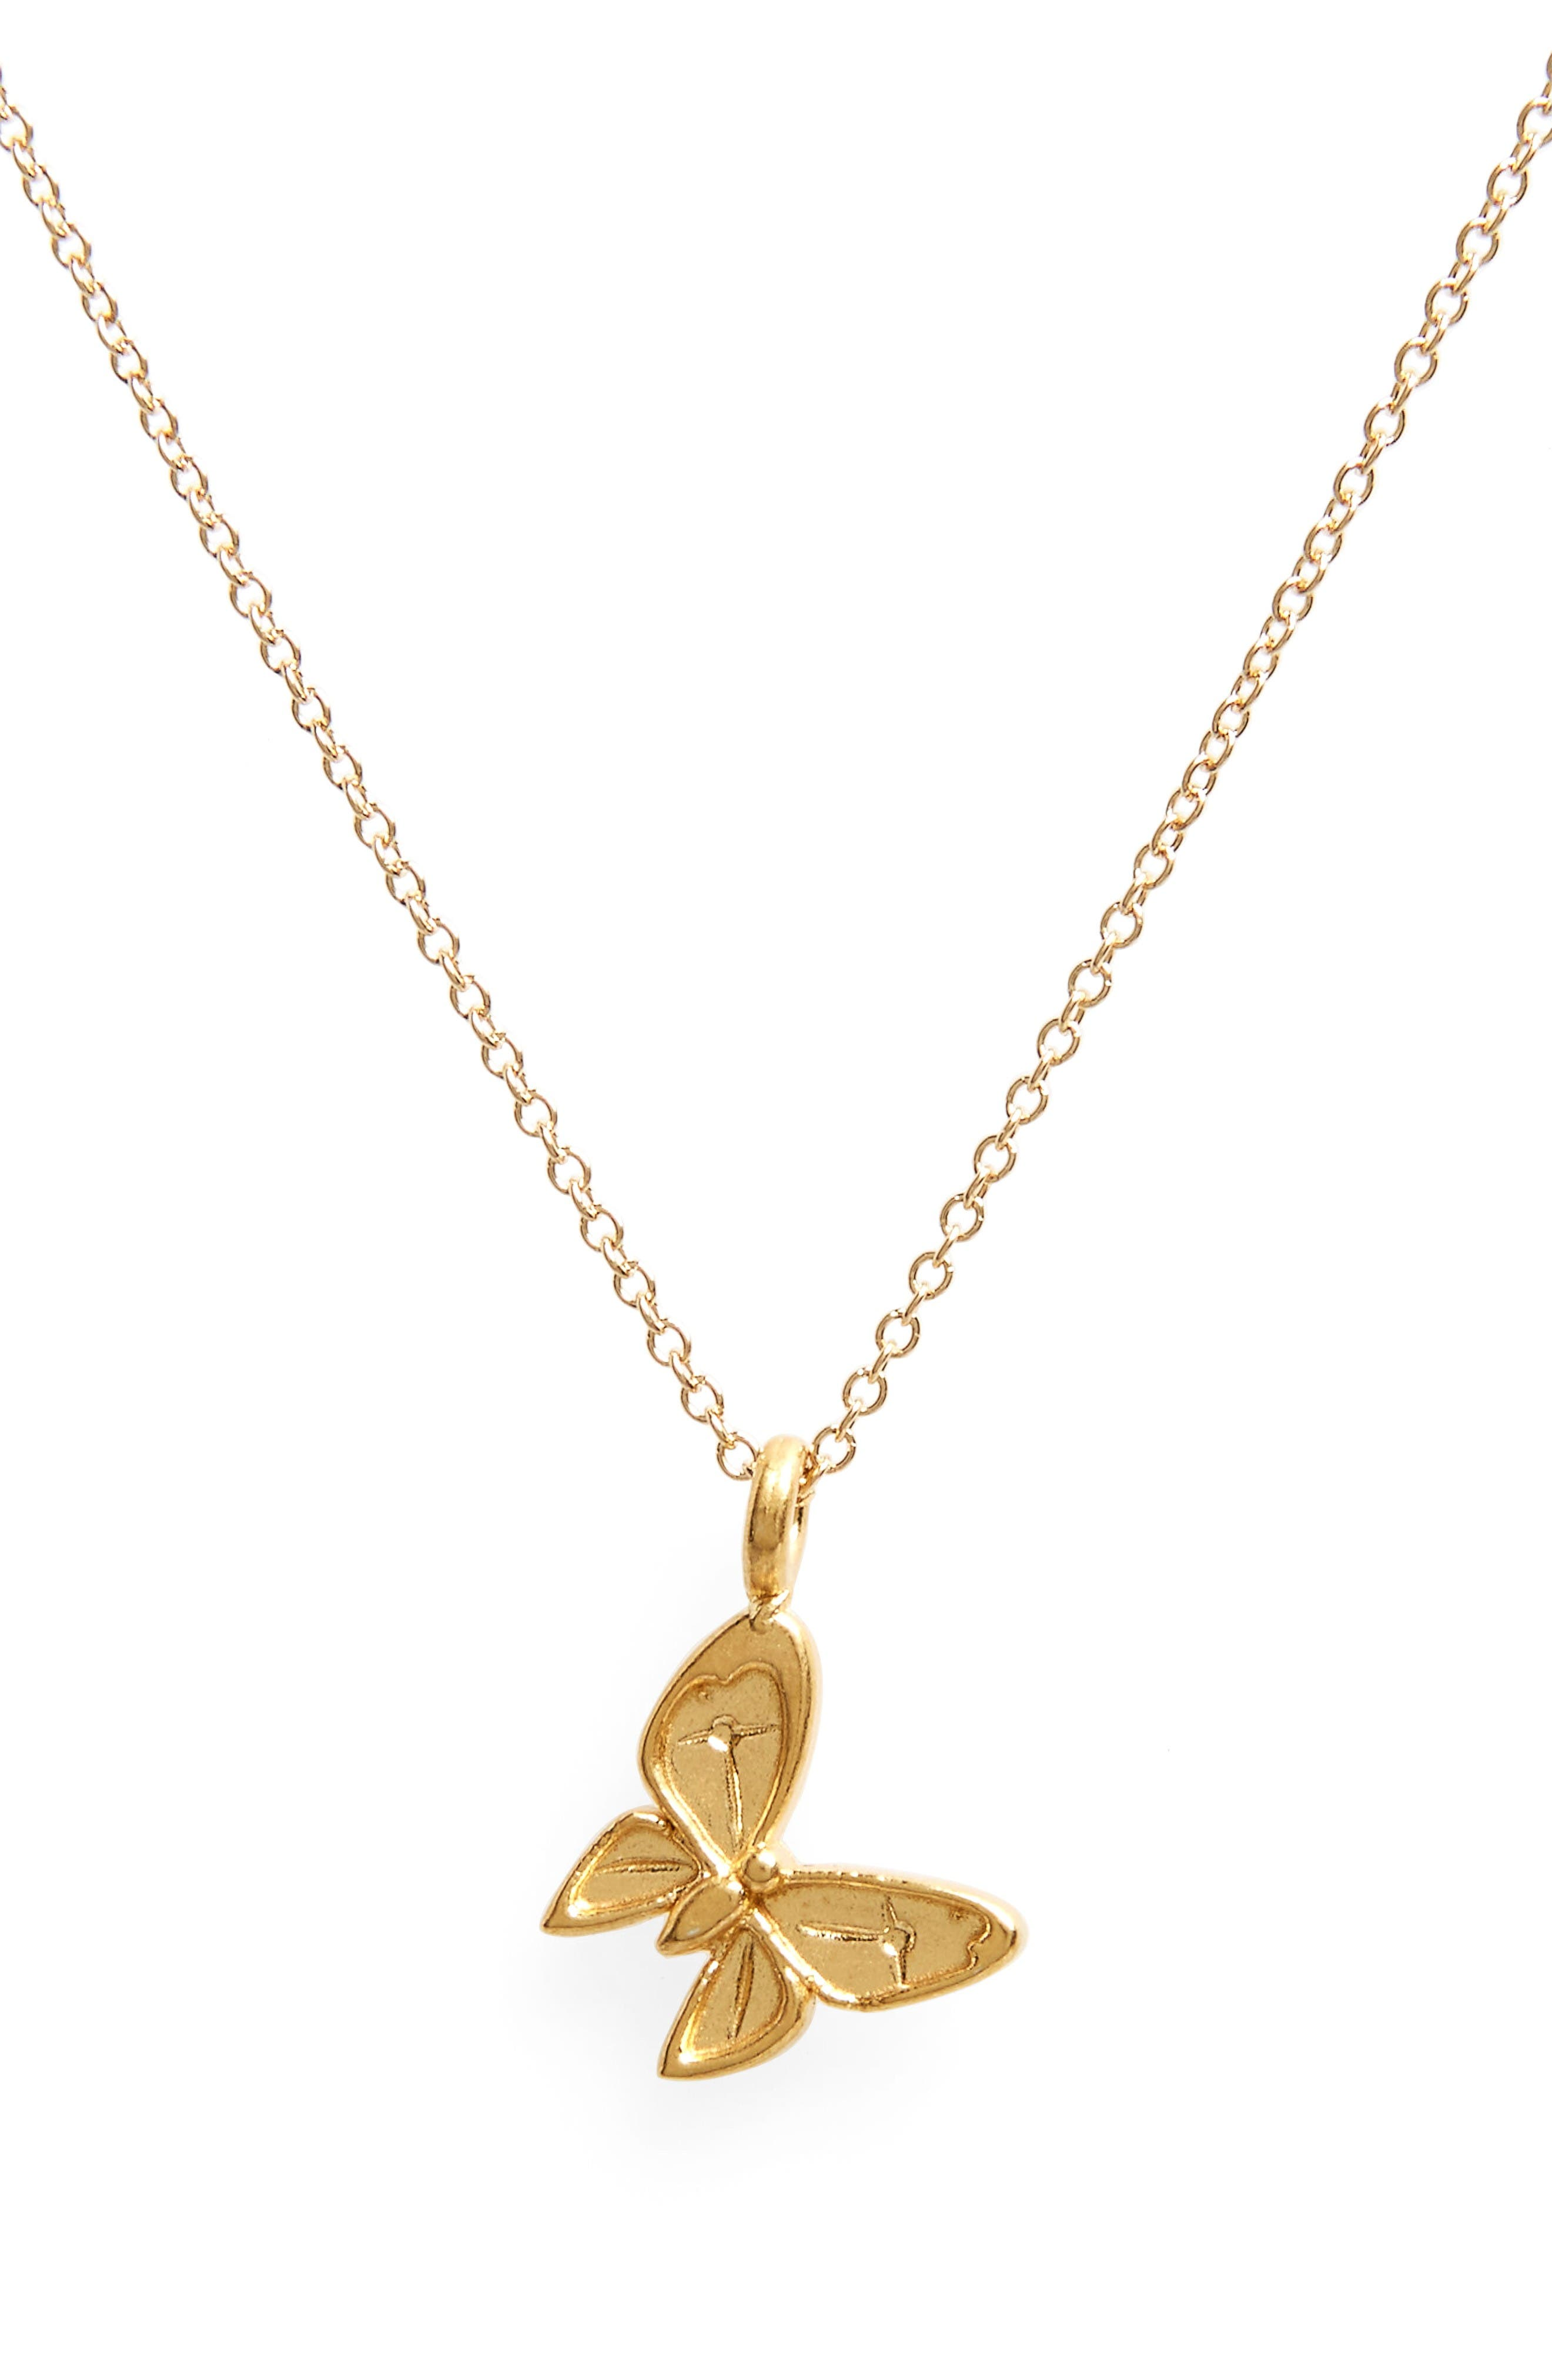 Butterfly Pendant Necklace,                             Alternate thumbnail 2, color,                             Gold